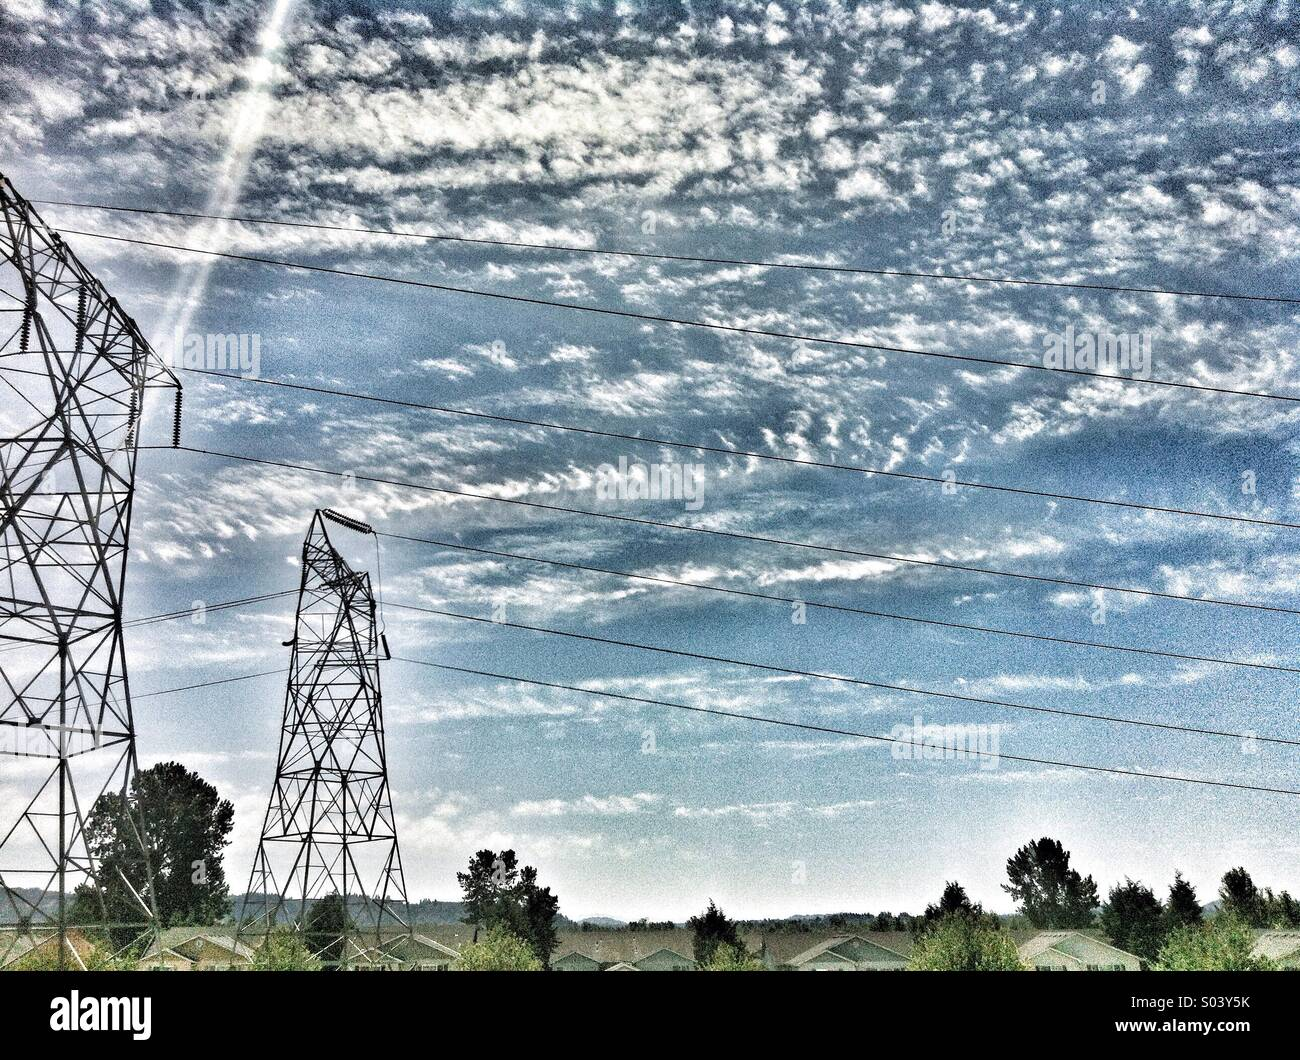 Powerlines with clouds. - Stock Image